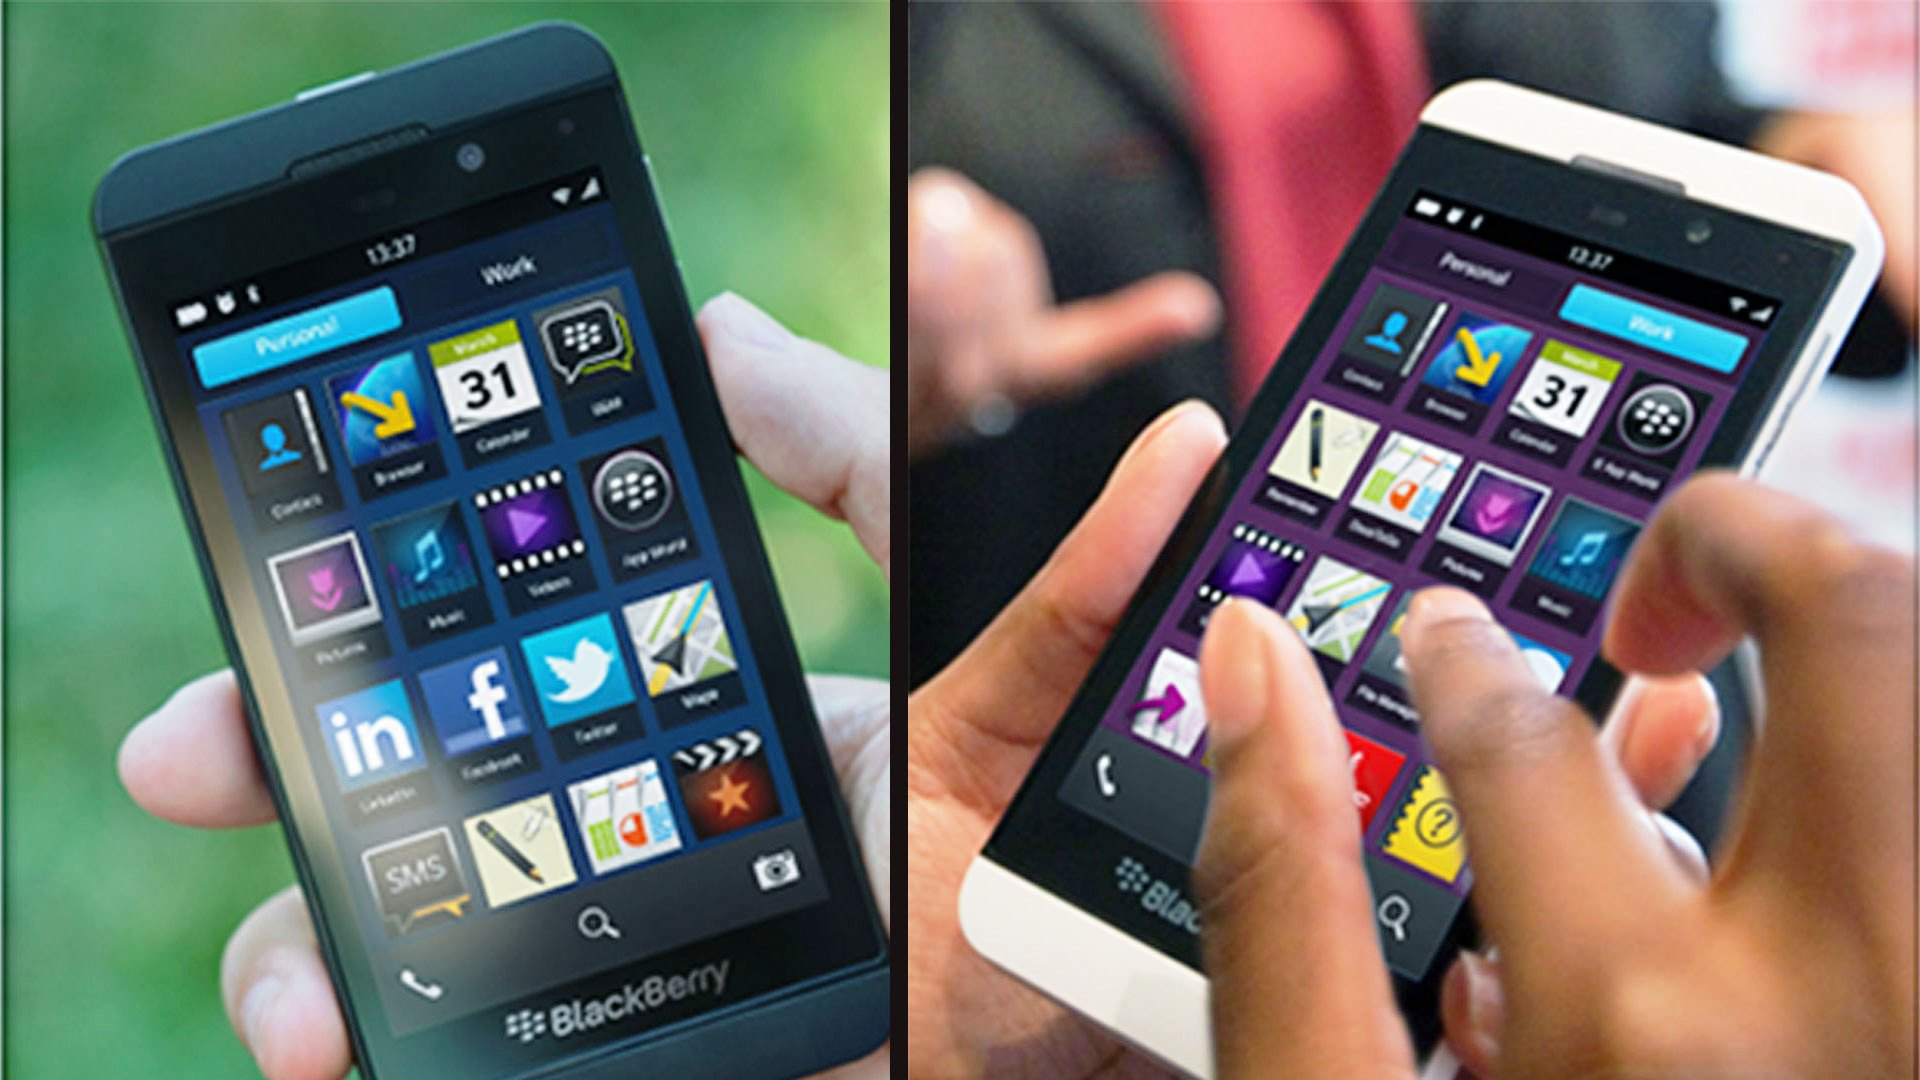 BlackBerry Z10 L-series wallpapers For Desktop